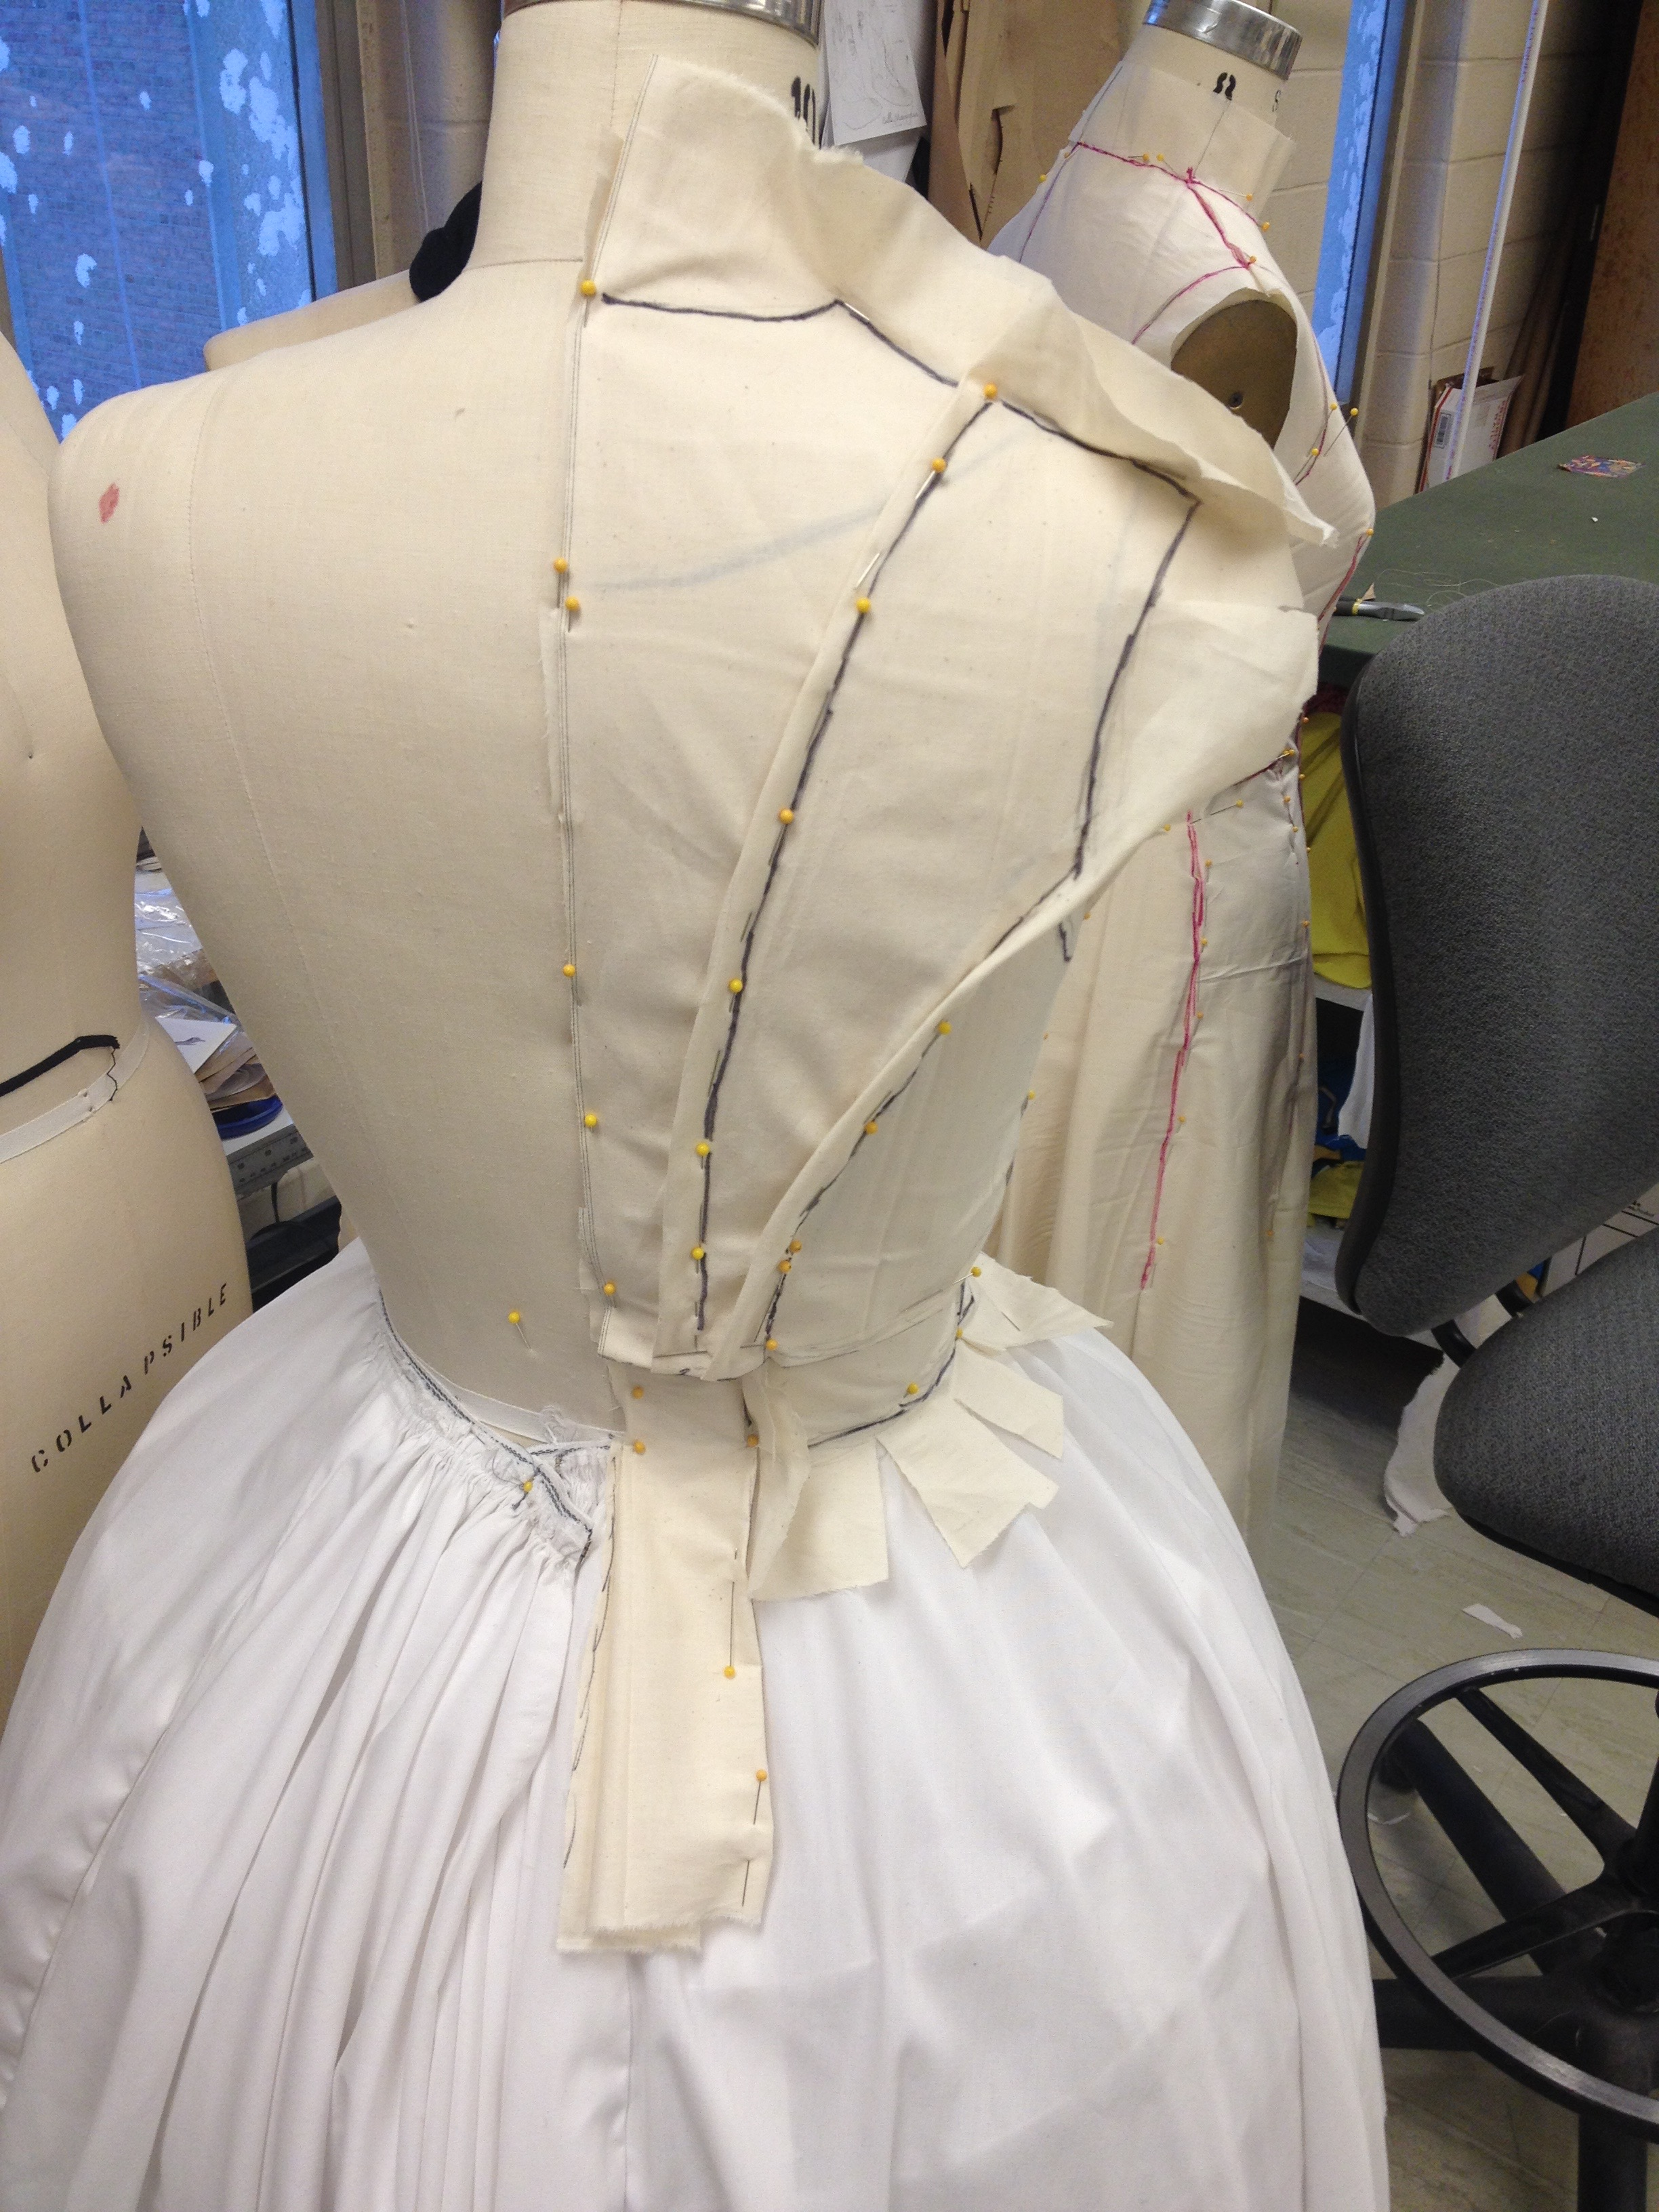 Back Bodice and Jacket Drape